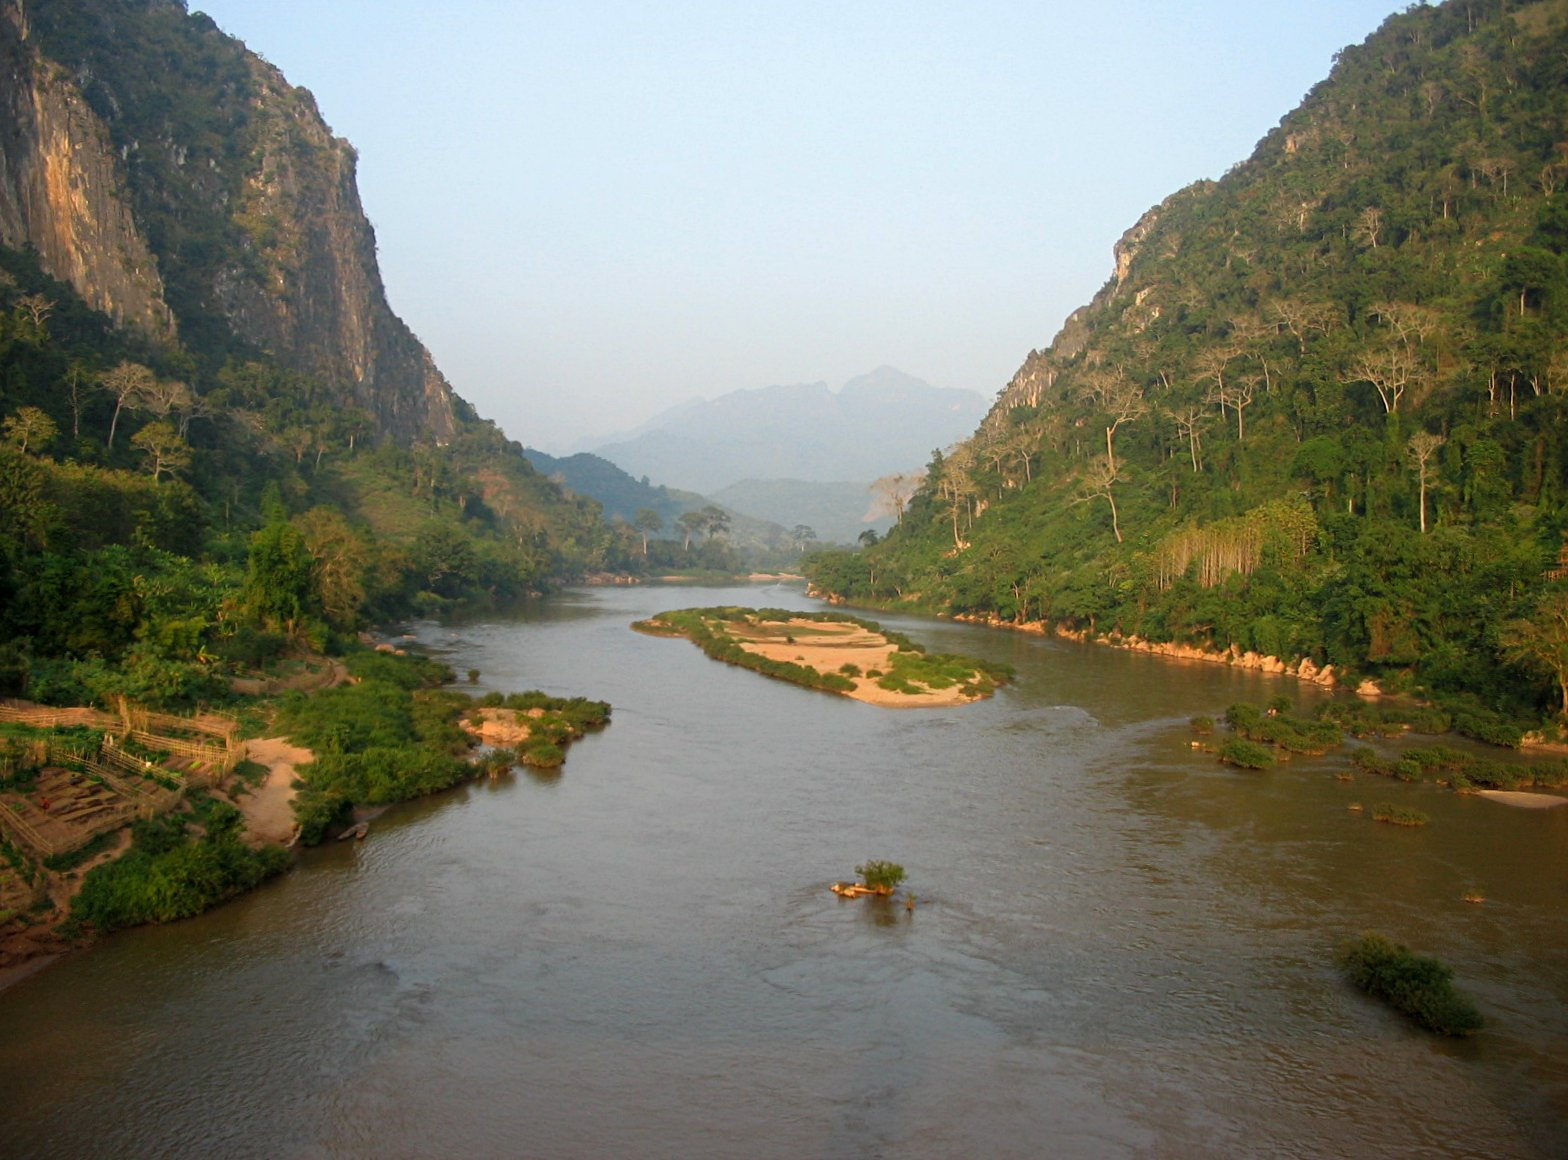 Rivers are an important means of transport in Laos.